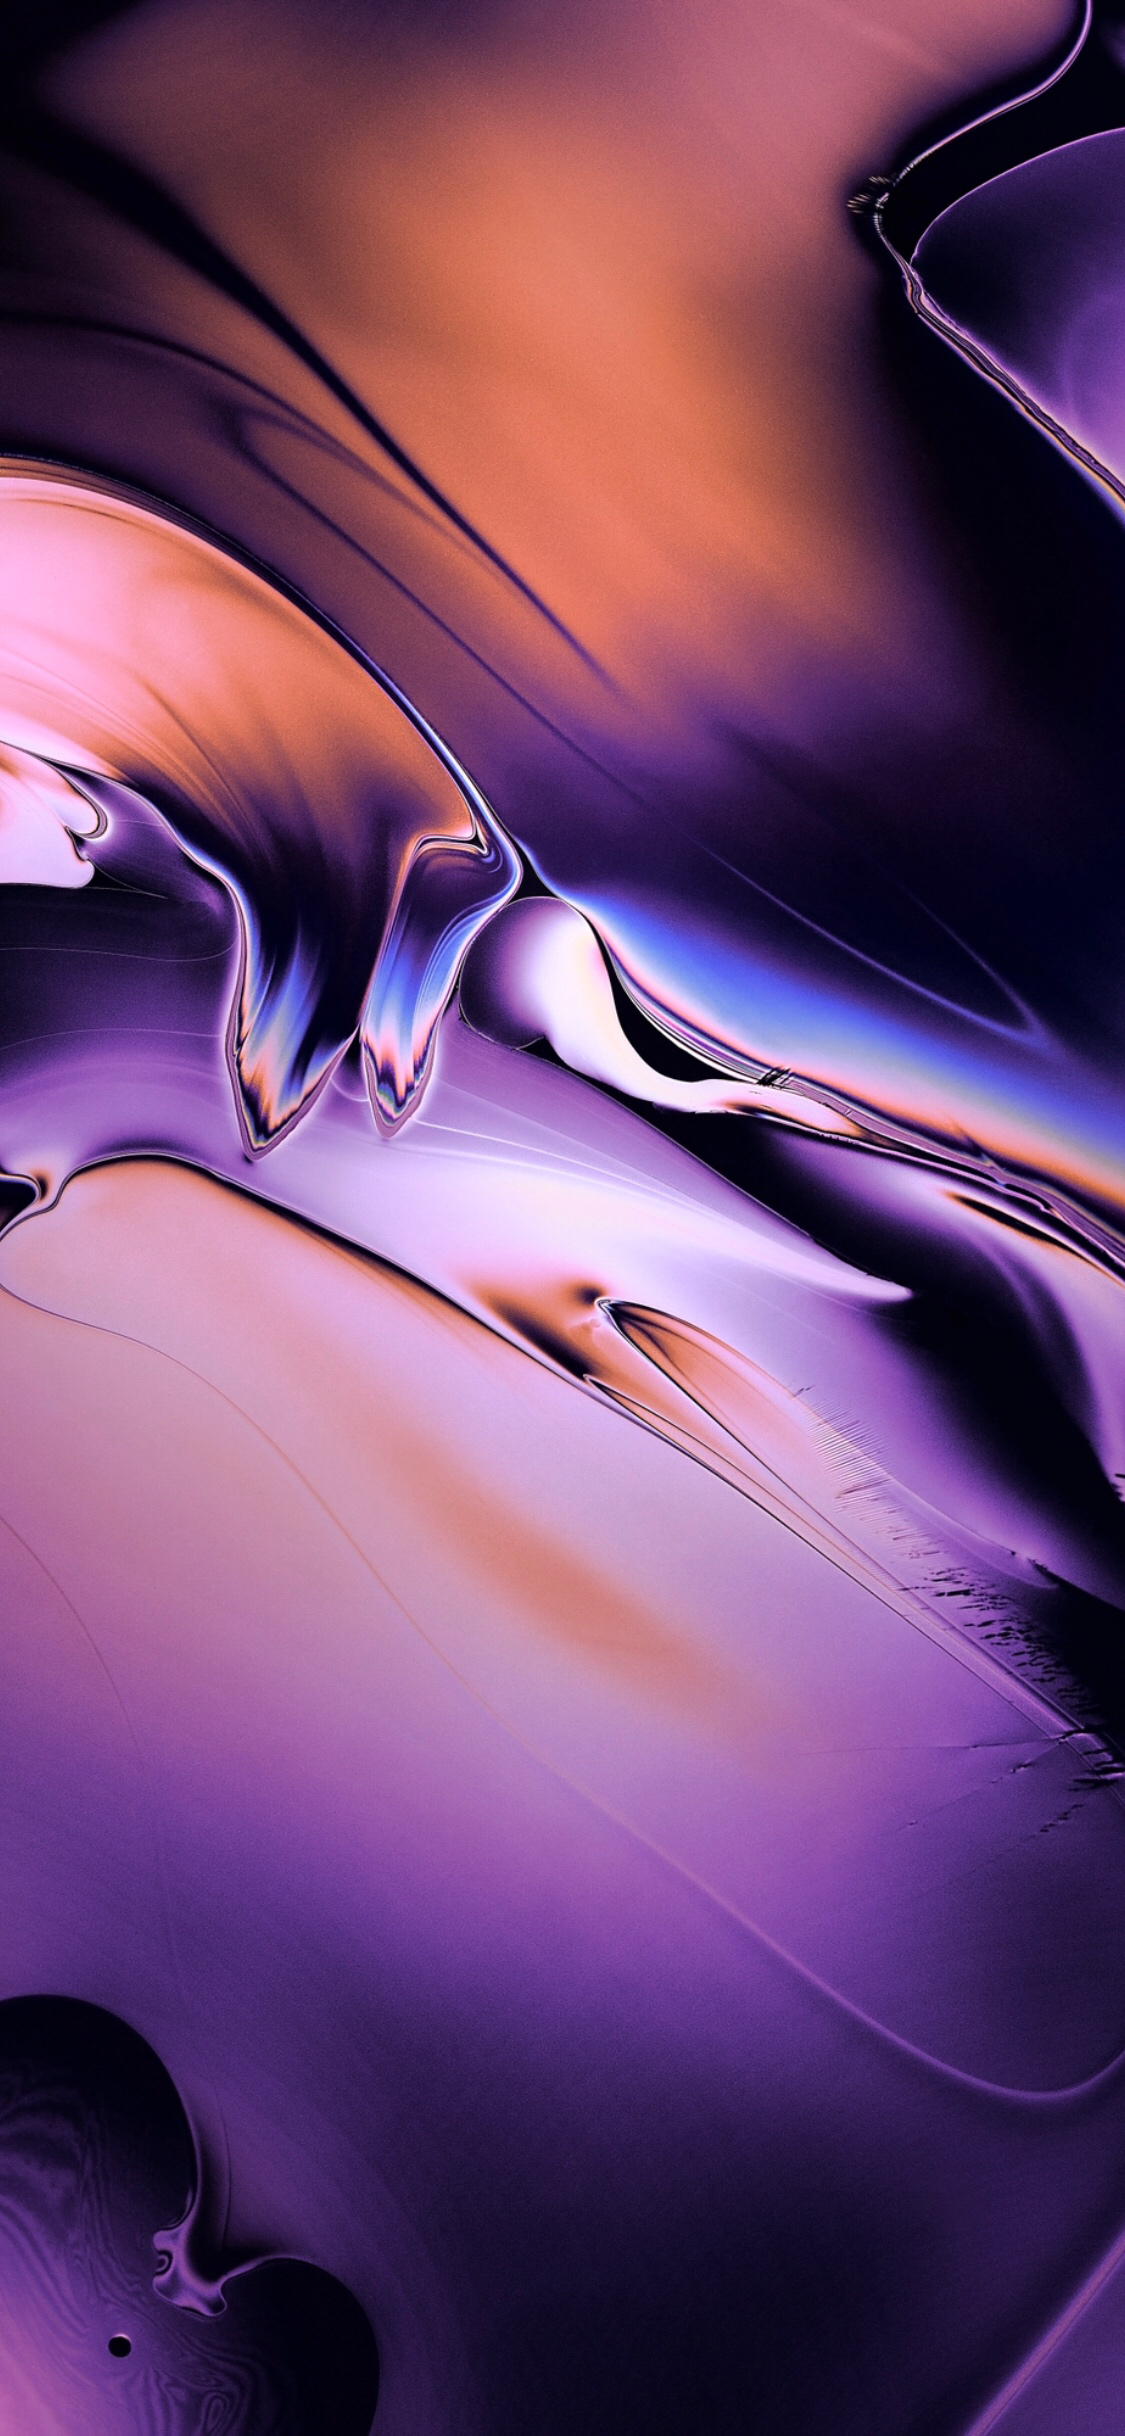 Iphone Wallpaper Background: Every MacOS Mojave Wallpaper For IPhone